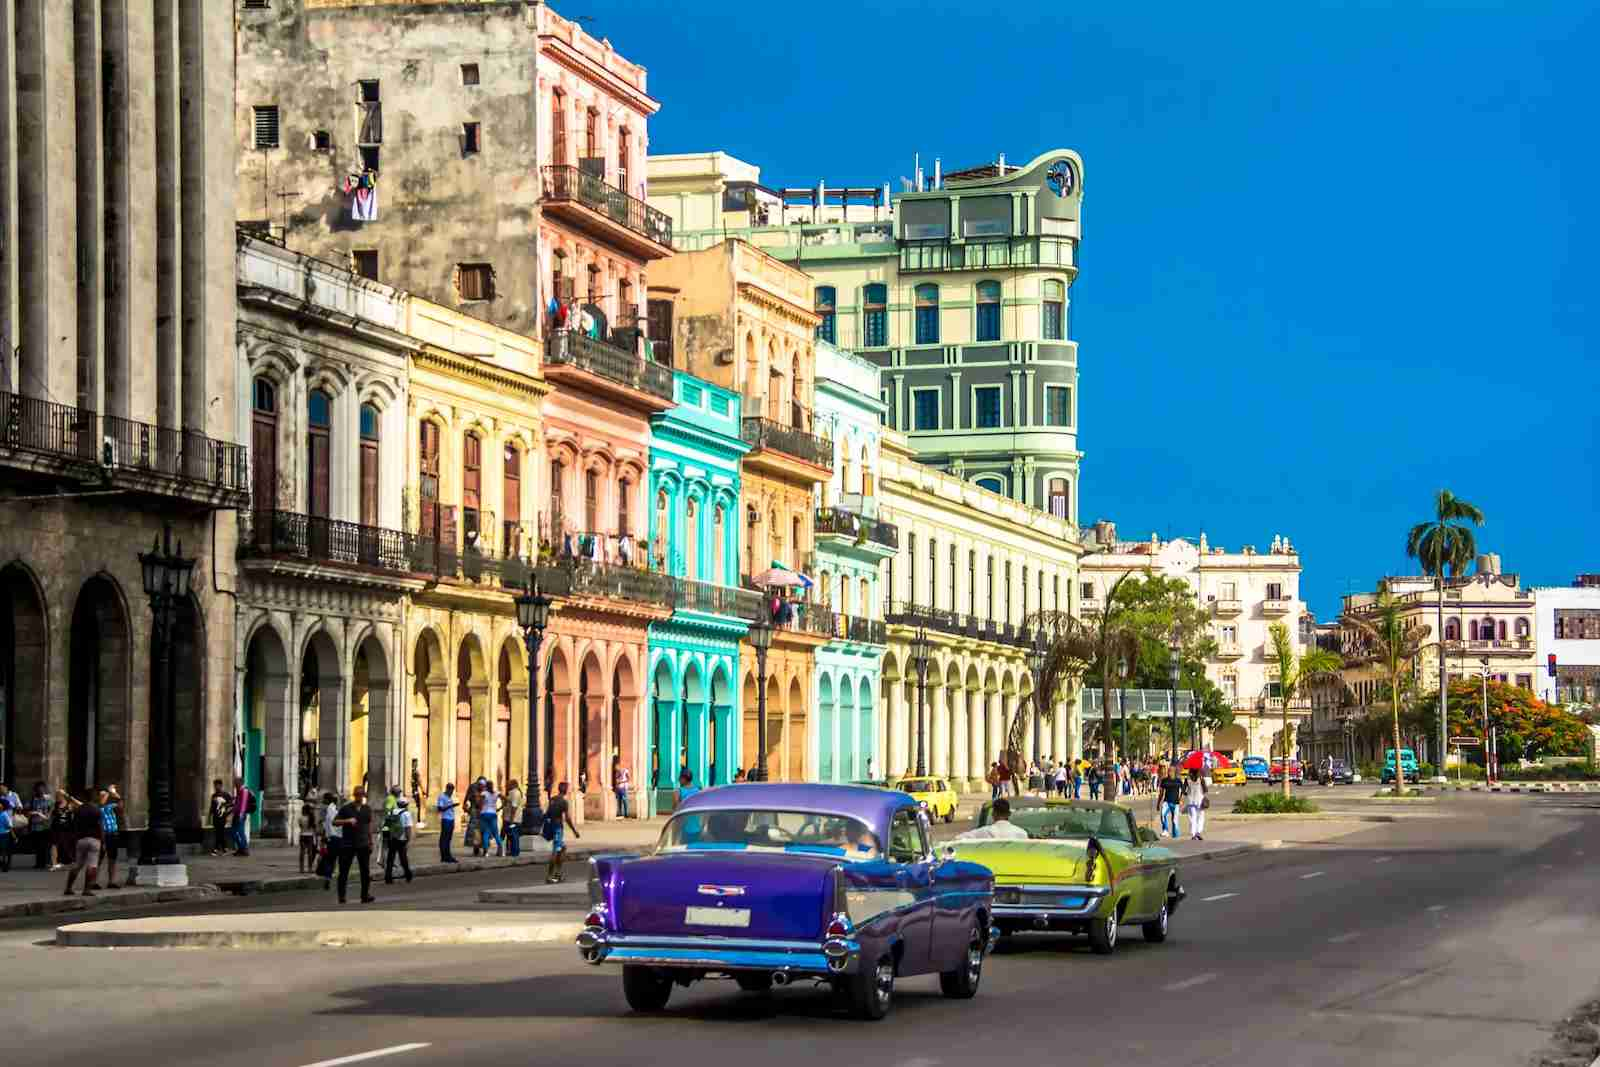 One TPG Family member used points and miles to bring her child to Cuba. (Photo by Kriangkrai Thitimakorn / Getty Images)